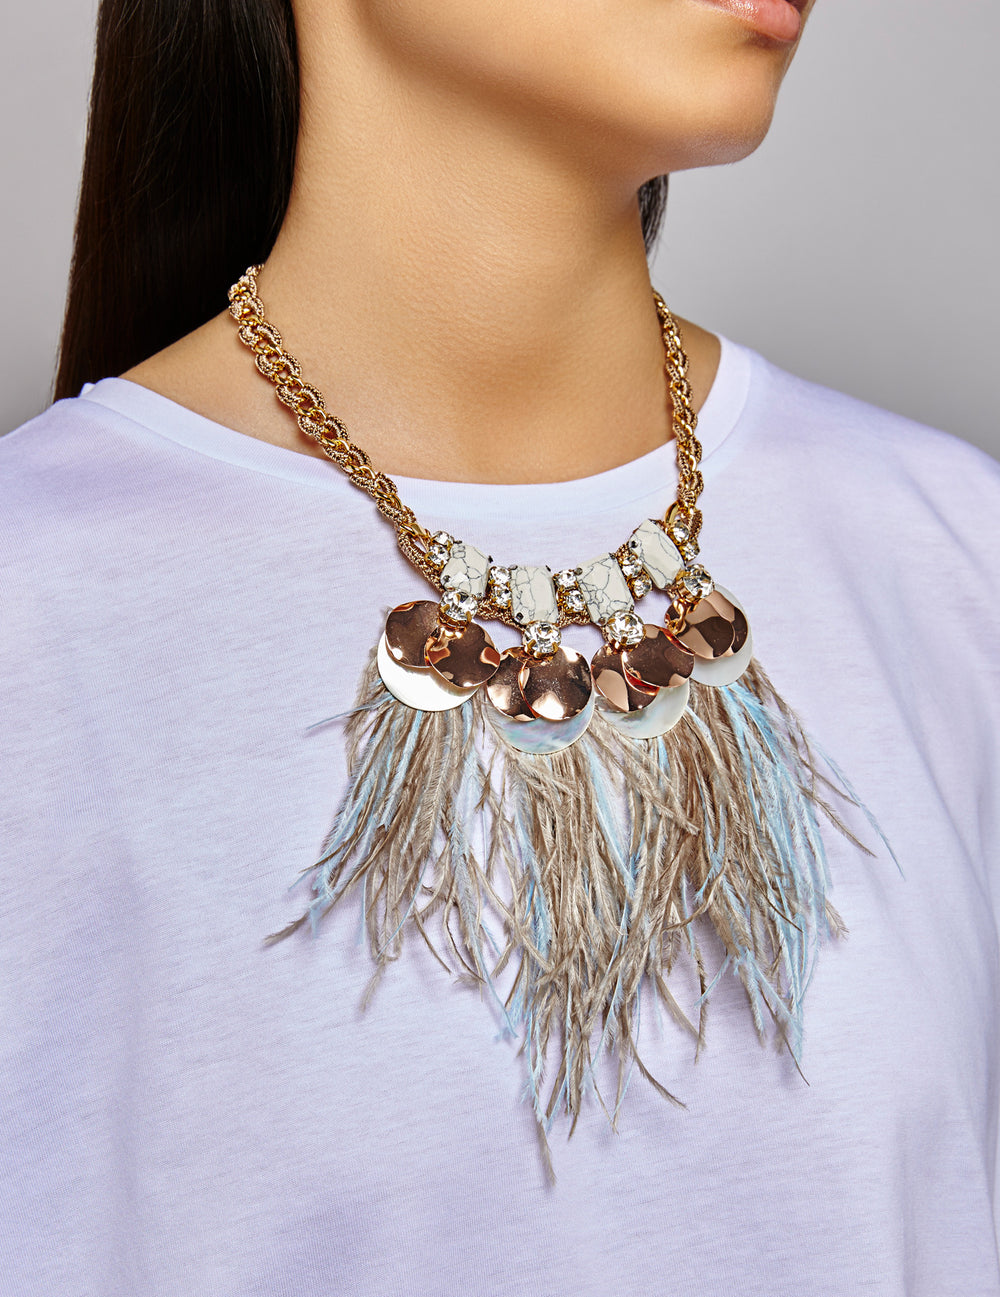 Heari necklace